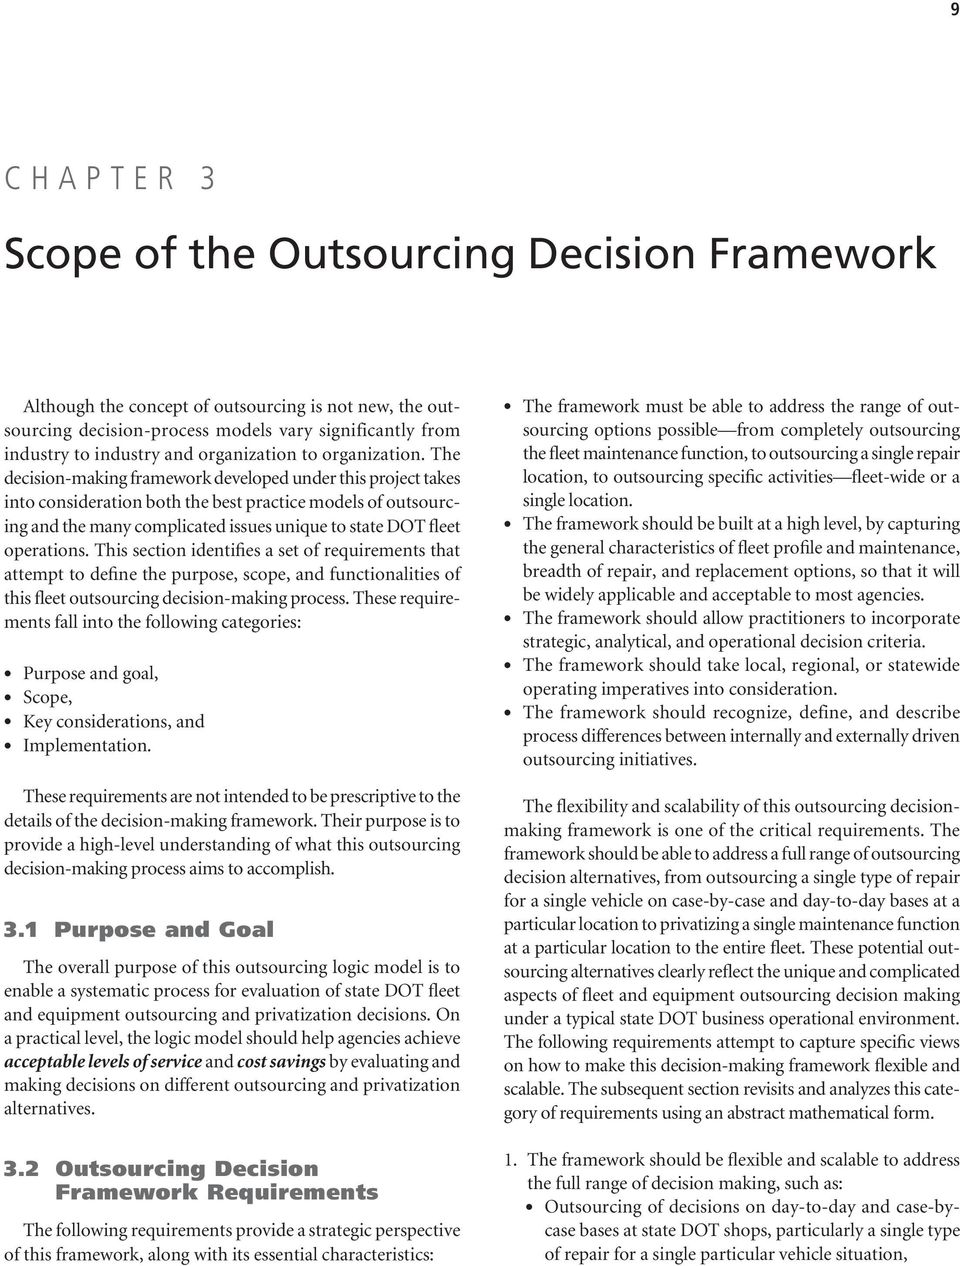 The decision-making framework developed under this project takes into consideration both the best practice models of outsourcing and the many complicated issues unique to state DOT fleet operations.